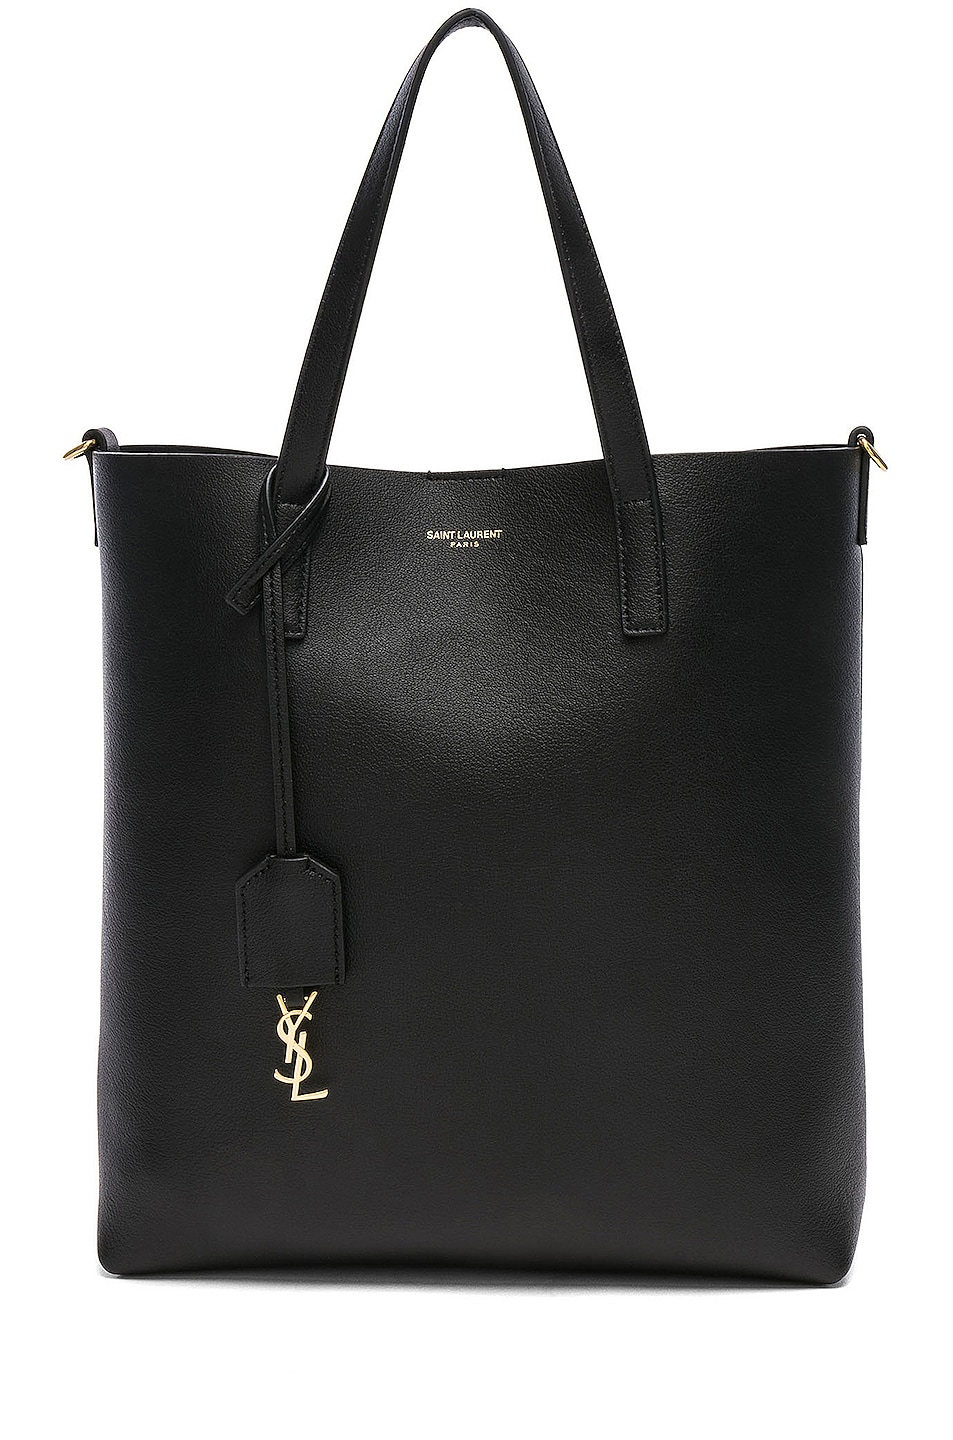 Image 1 of Saint Laurent Toy North South Tote Bag in Black